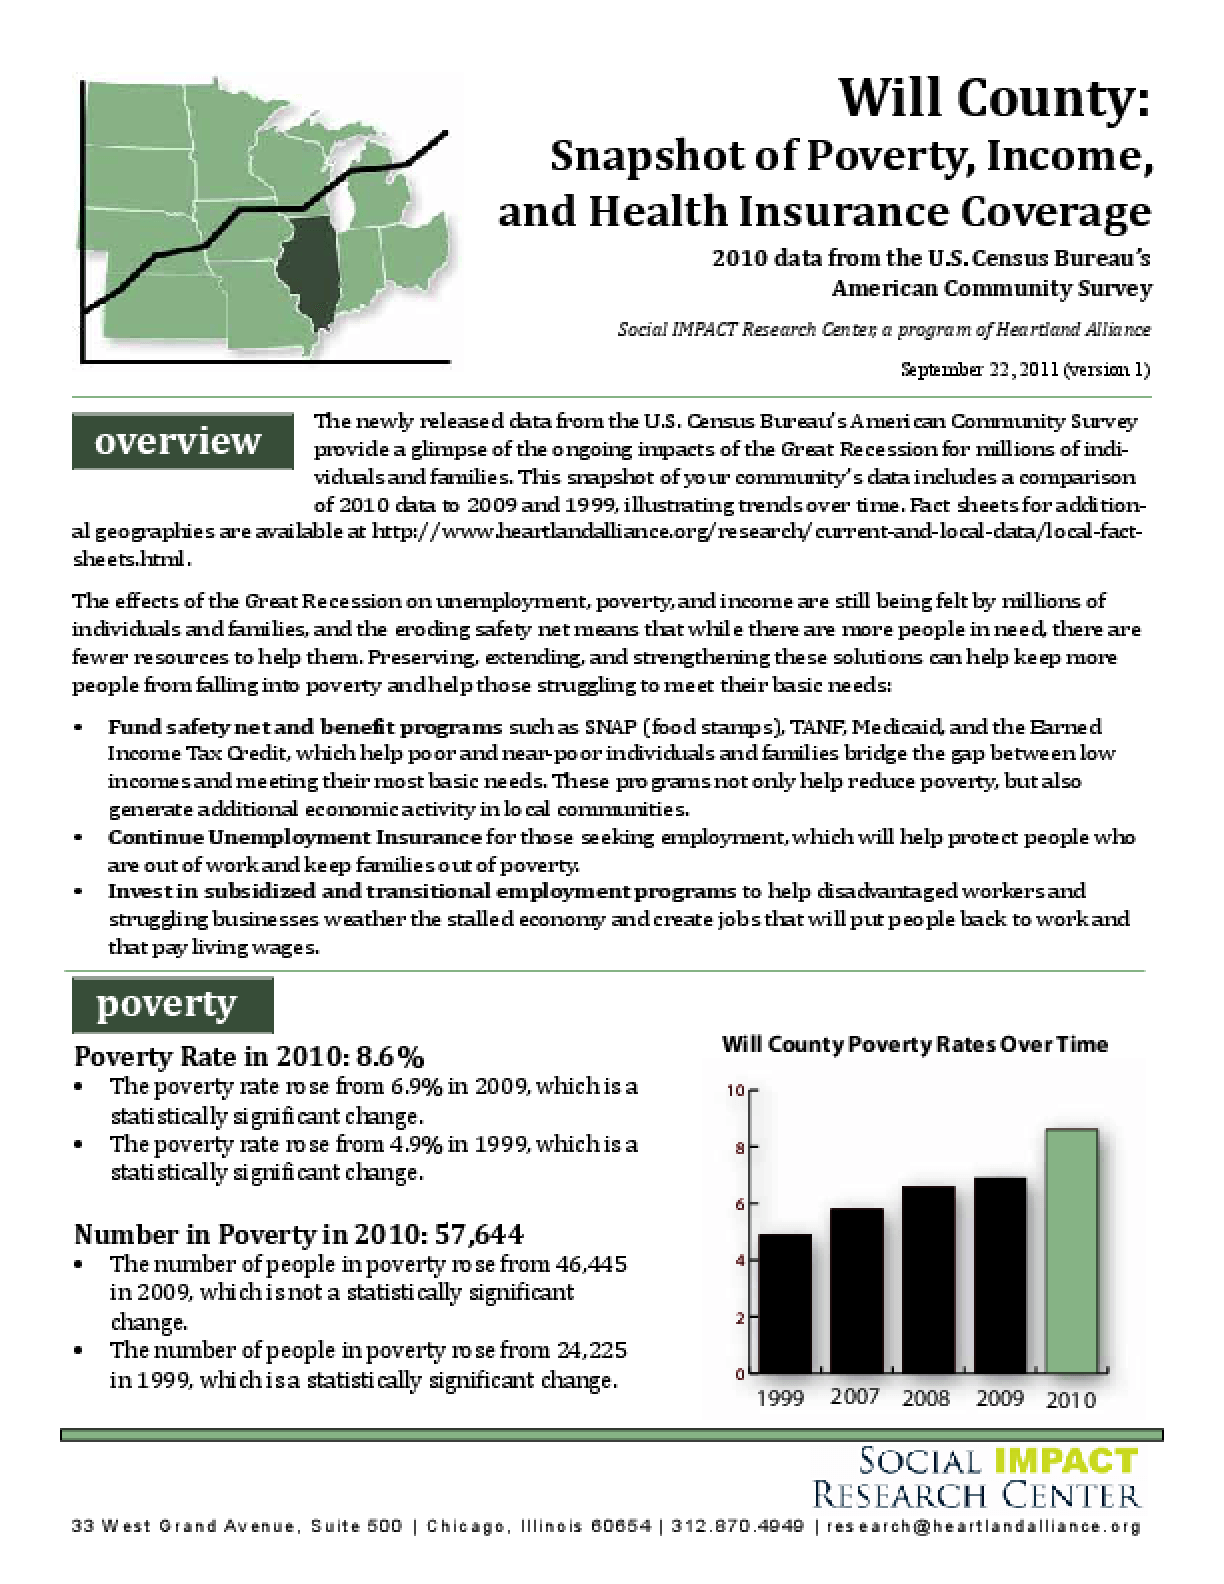 Will County: Snapshot of Poverty, Income, and Health Insurance Coverage